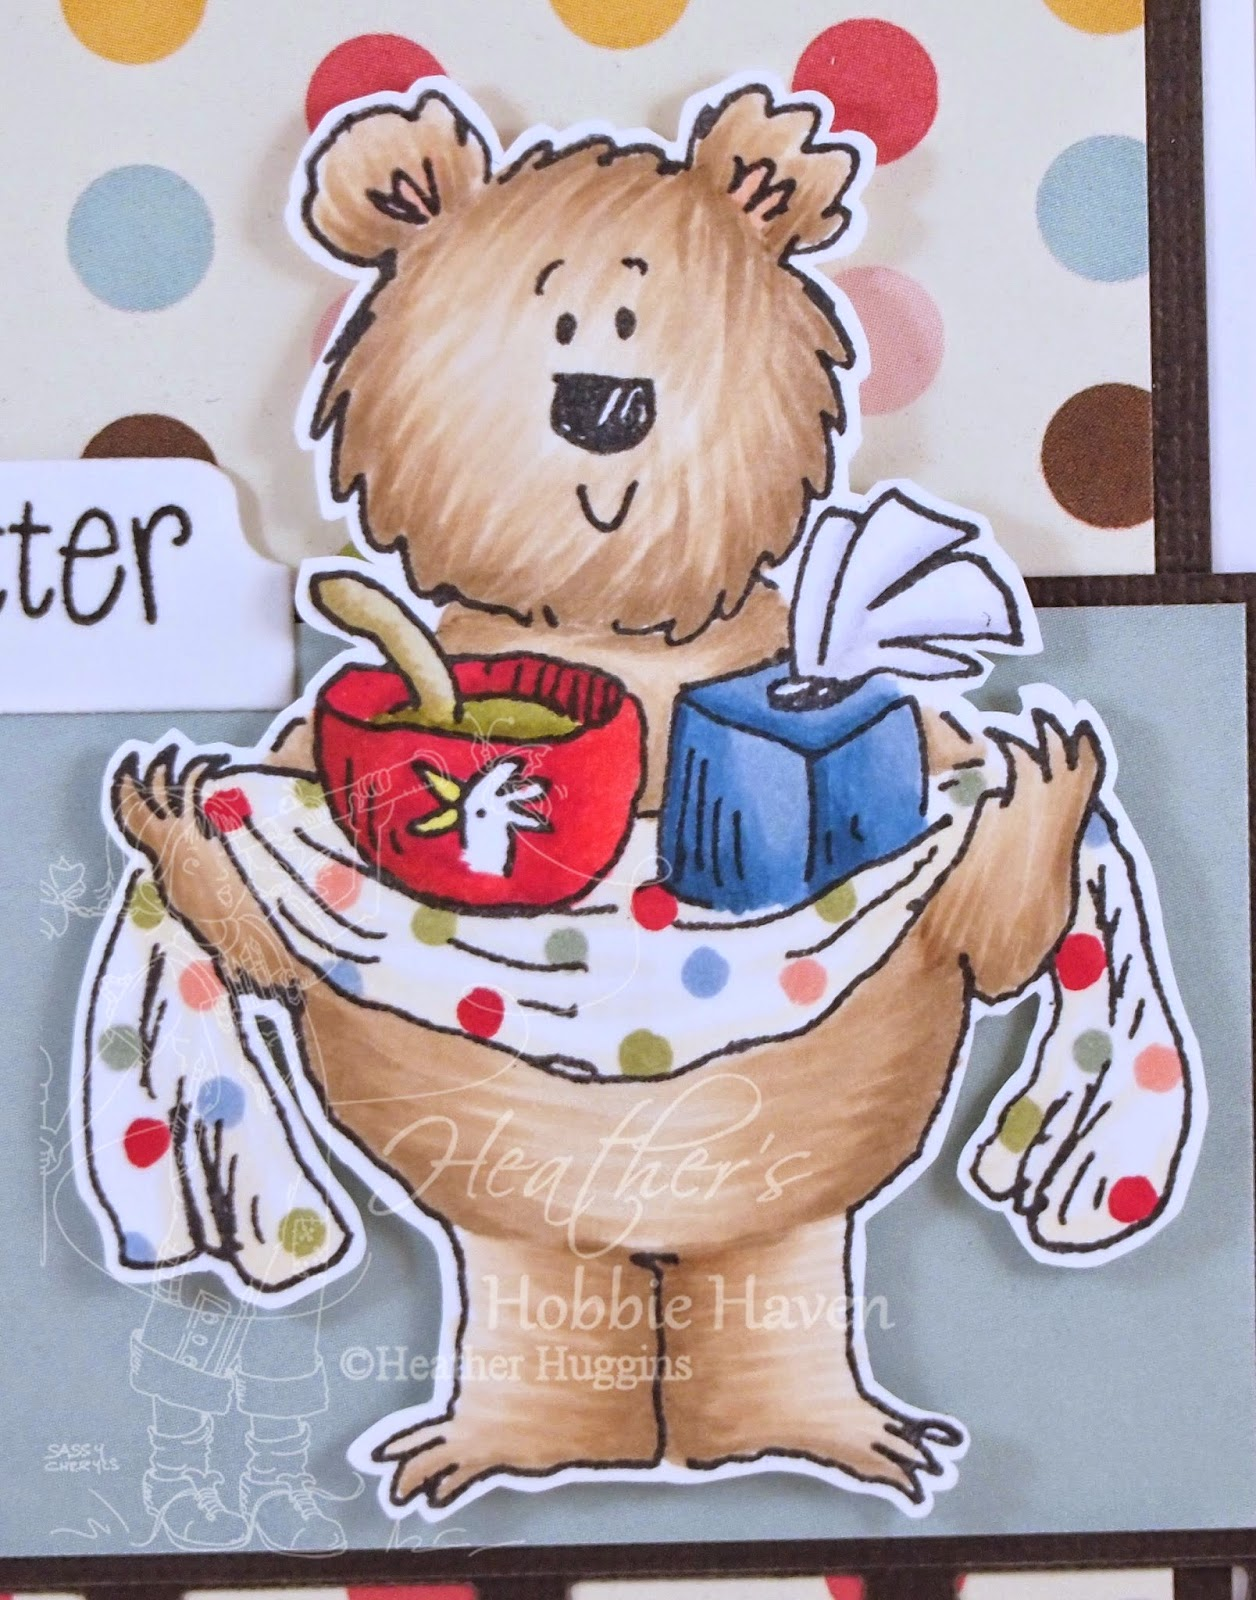 Heather's Hobbie Haven - Fred Bear Gives Comfort Card Kit